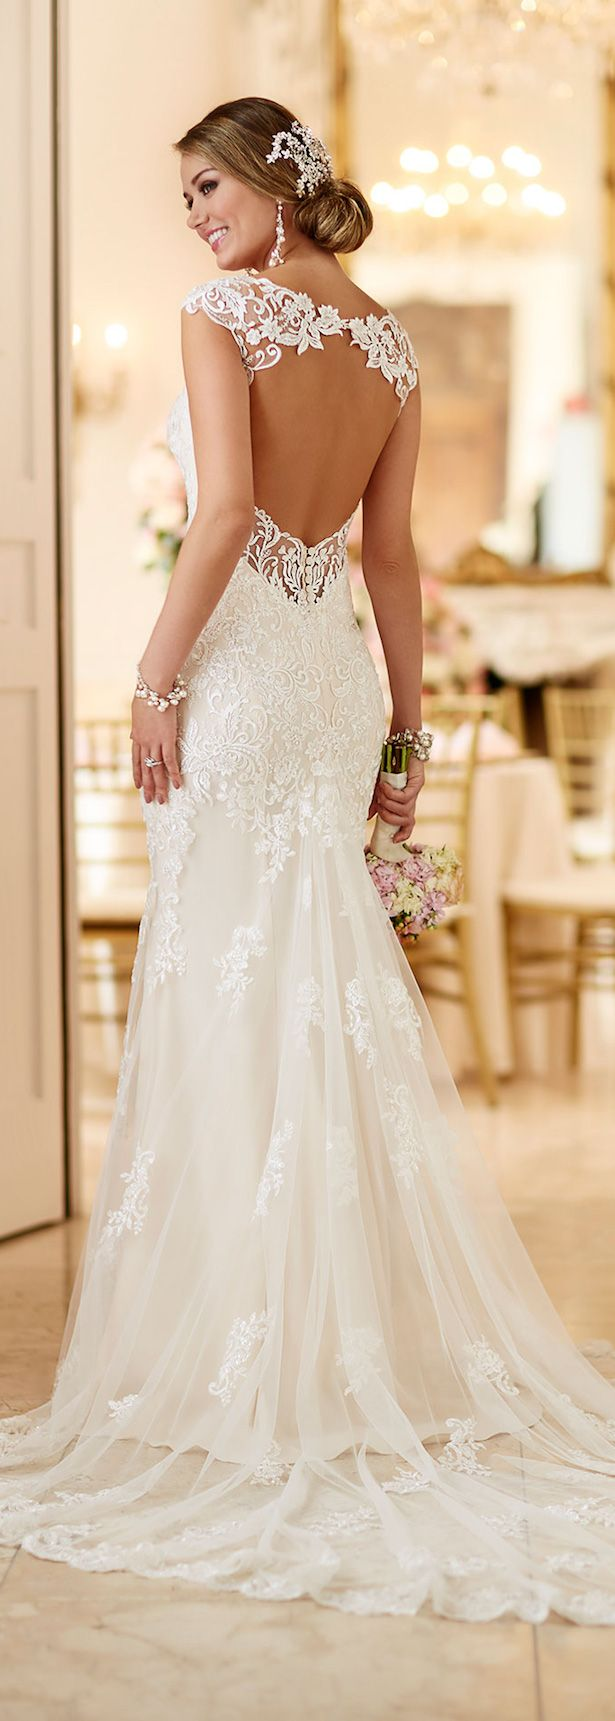 5b170b75a6c77ff63d3051841516bb32--wedding-dresses-mermaid-with-sleeves-open-backs-mermaid-tail-wedding-dress